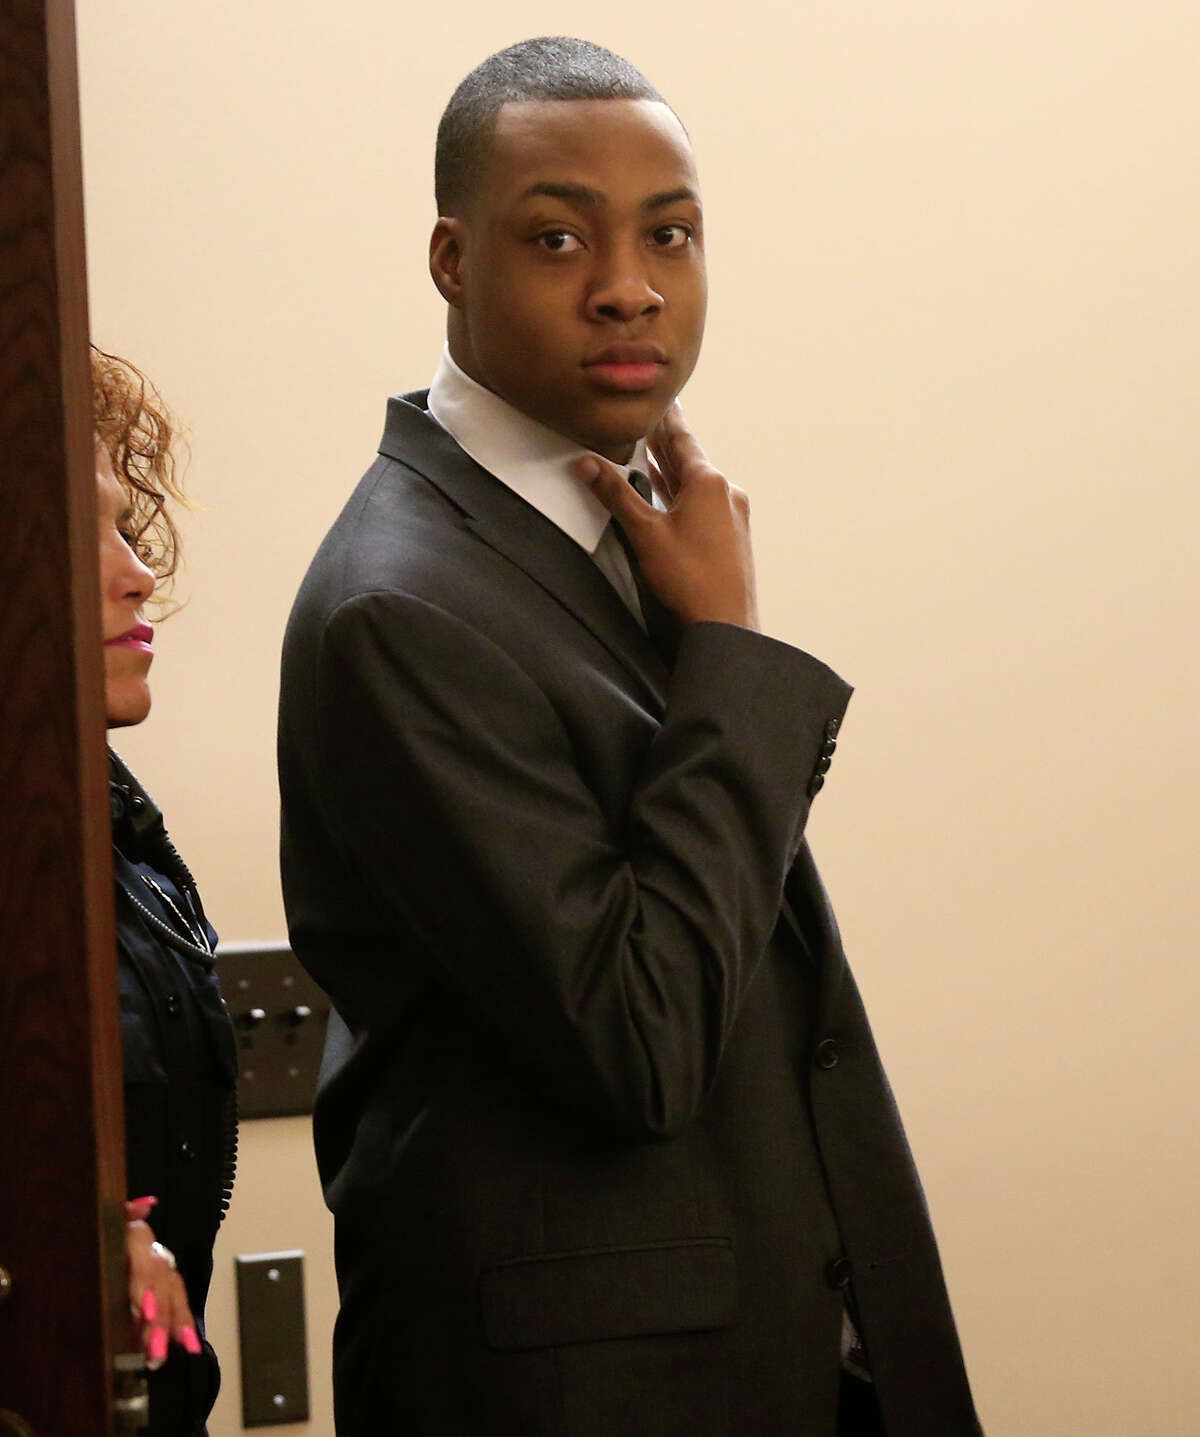 Anthony Johnson, 23, waits for the jury to return after reaching a verdict during his murder trial in the Bexar County 290th District Court, Tuesday, April 9, 2013. A few minutes later, Johnson was found guilty of killing local hip-hop artist, Rodrique Ngande, 21, in November 2011. The punishment phase of the trial will start on Wednesday.